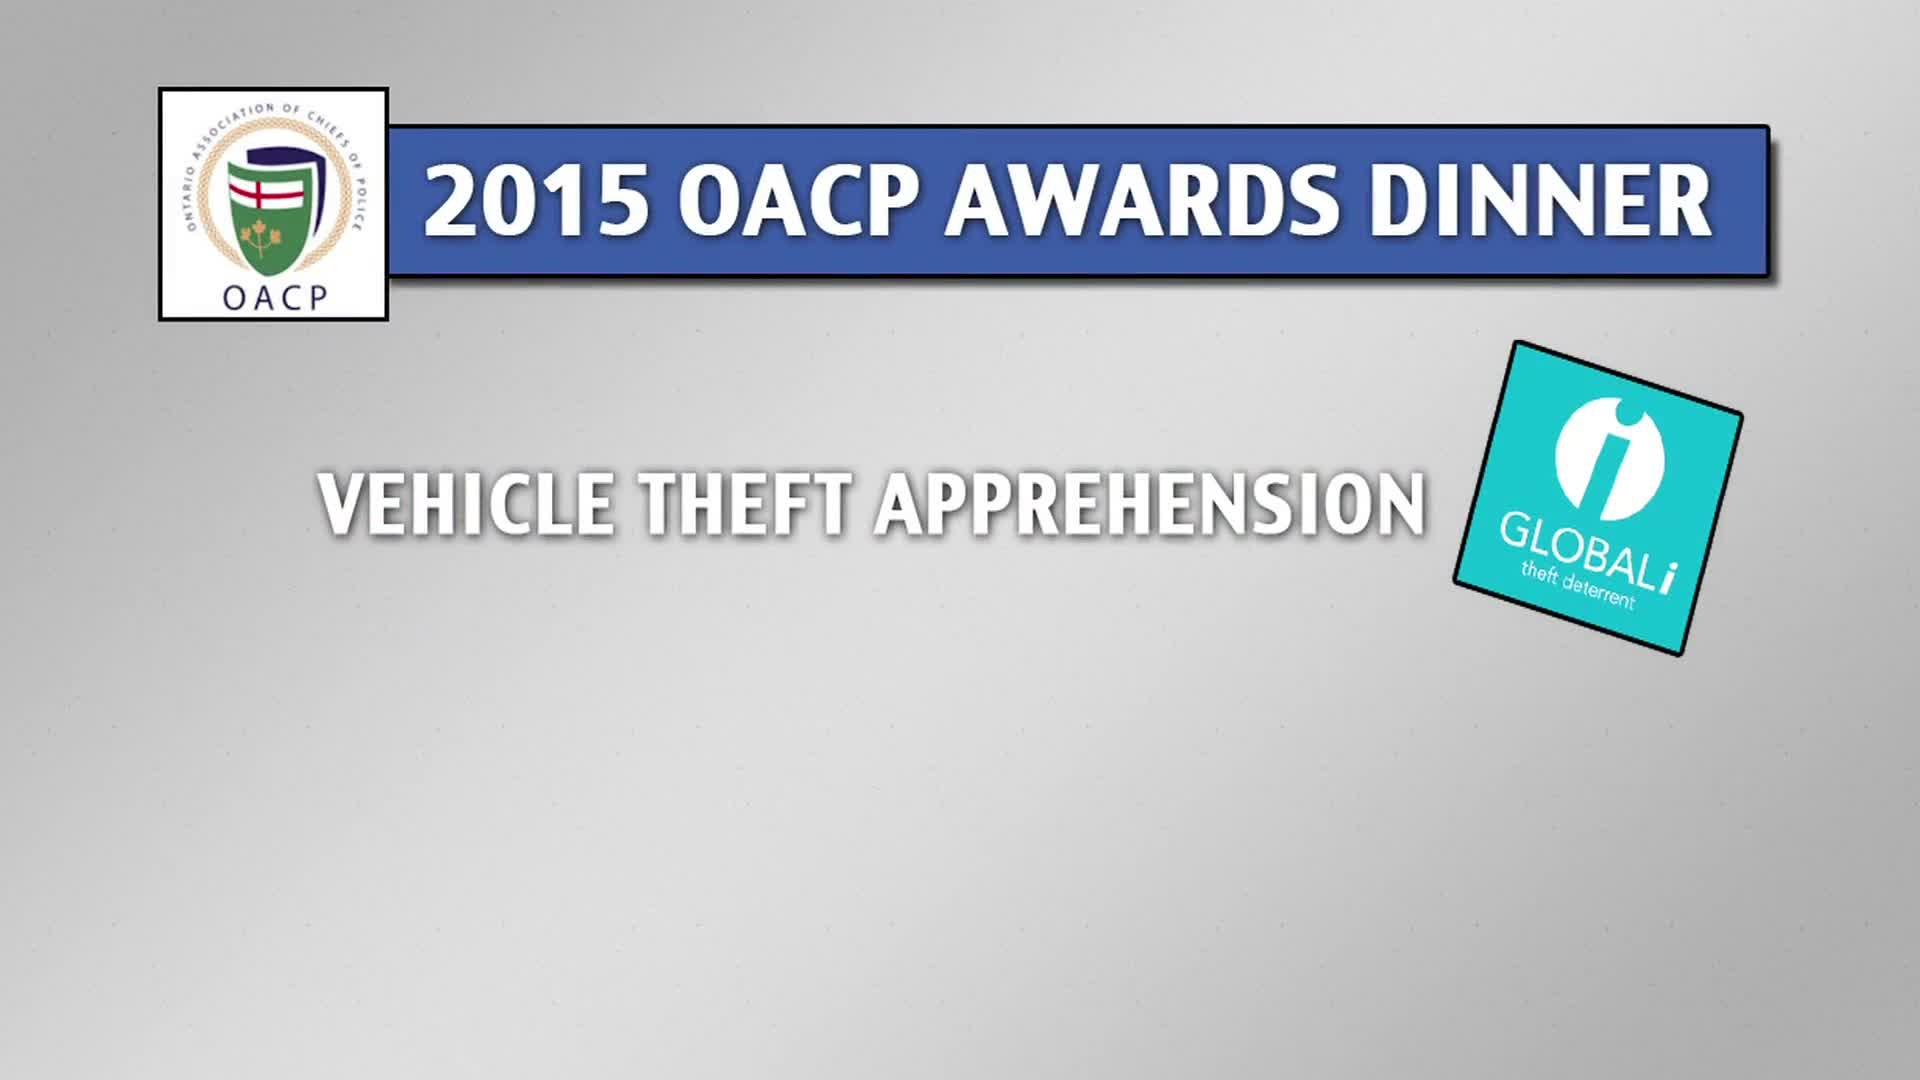 GLOBALi proud sponsor of the 2015 OACP (Ontario Association of Chiefs of Police) Awards Dinner.